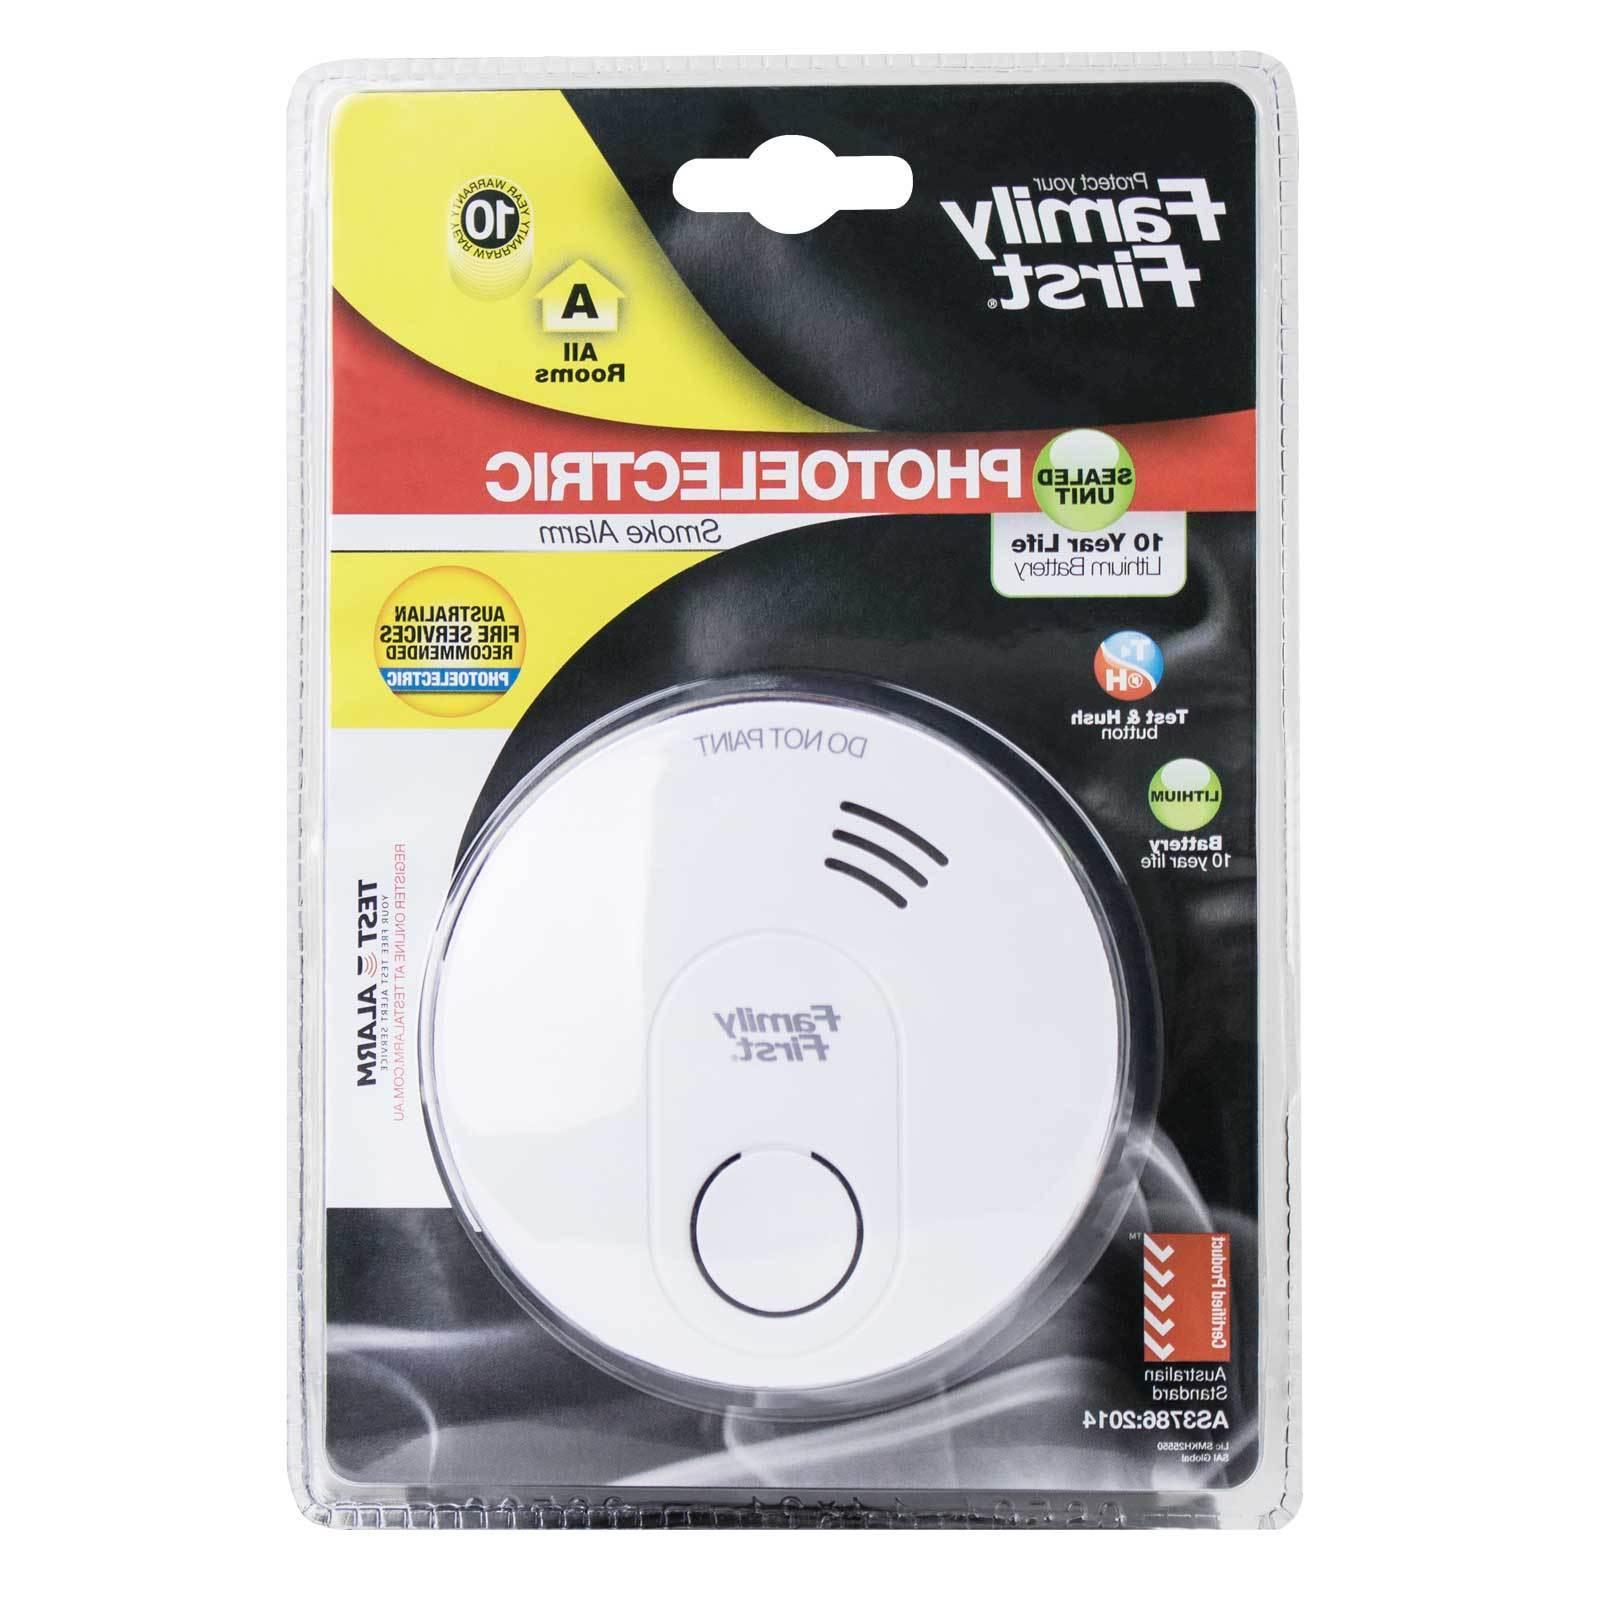 10 year lithium photoelectric smoke alarm no